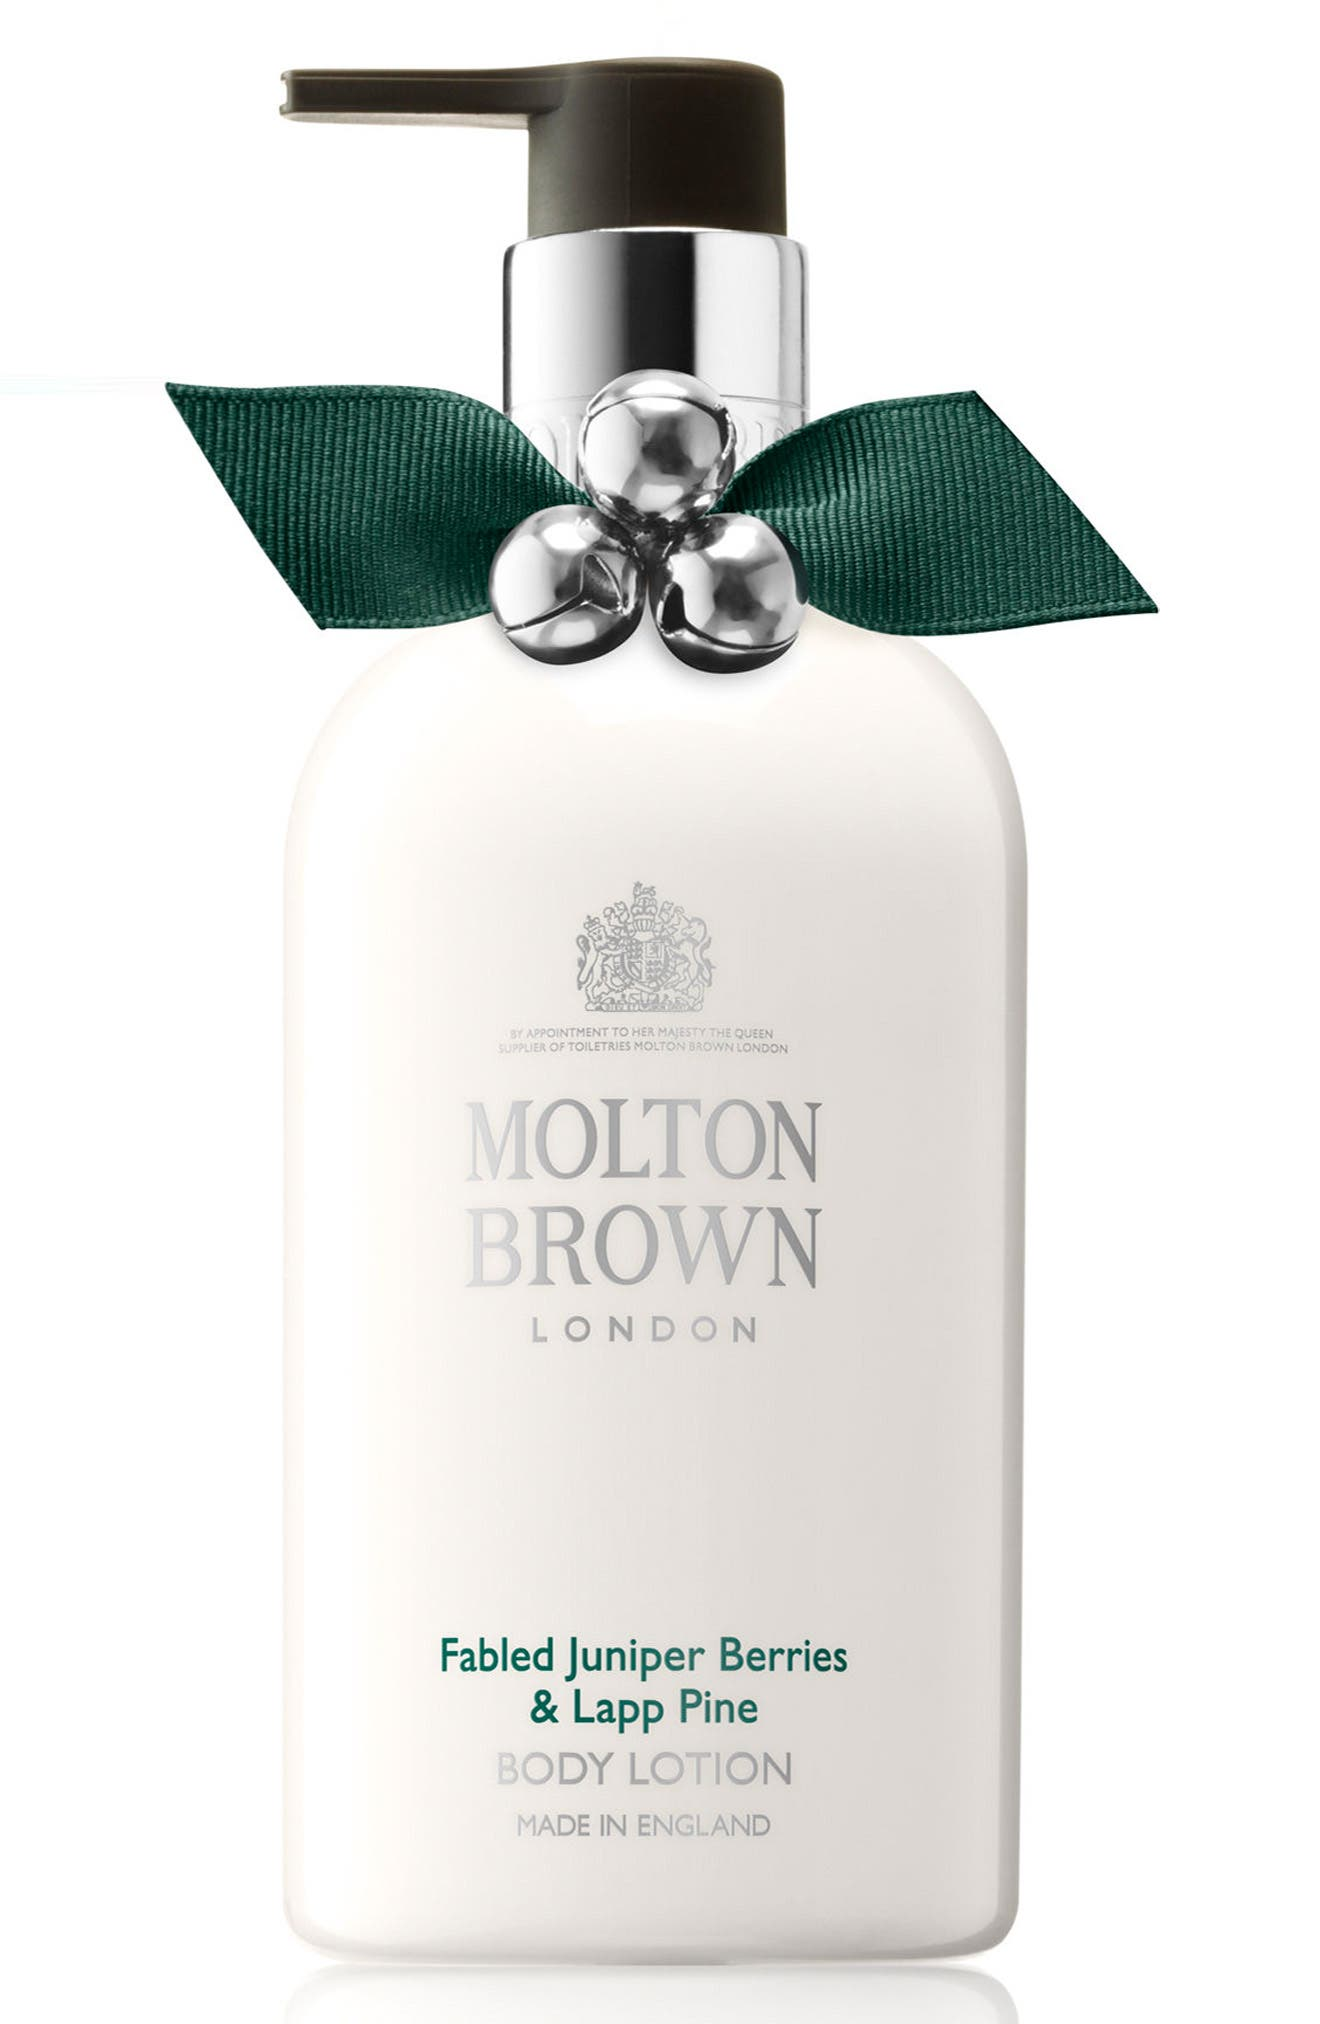 MOLTON BROWN London Fabled Juniper Berries & Lapp Pine Body Lotion (Limited Edition)